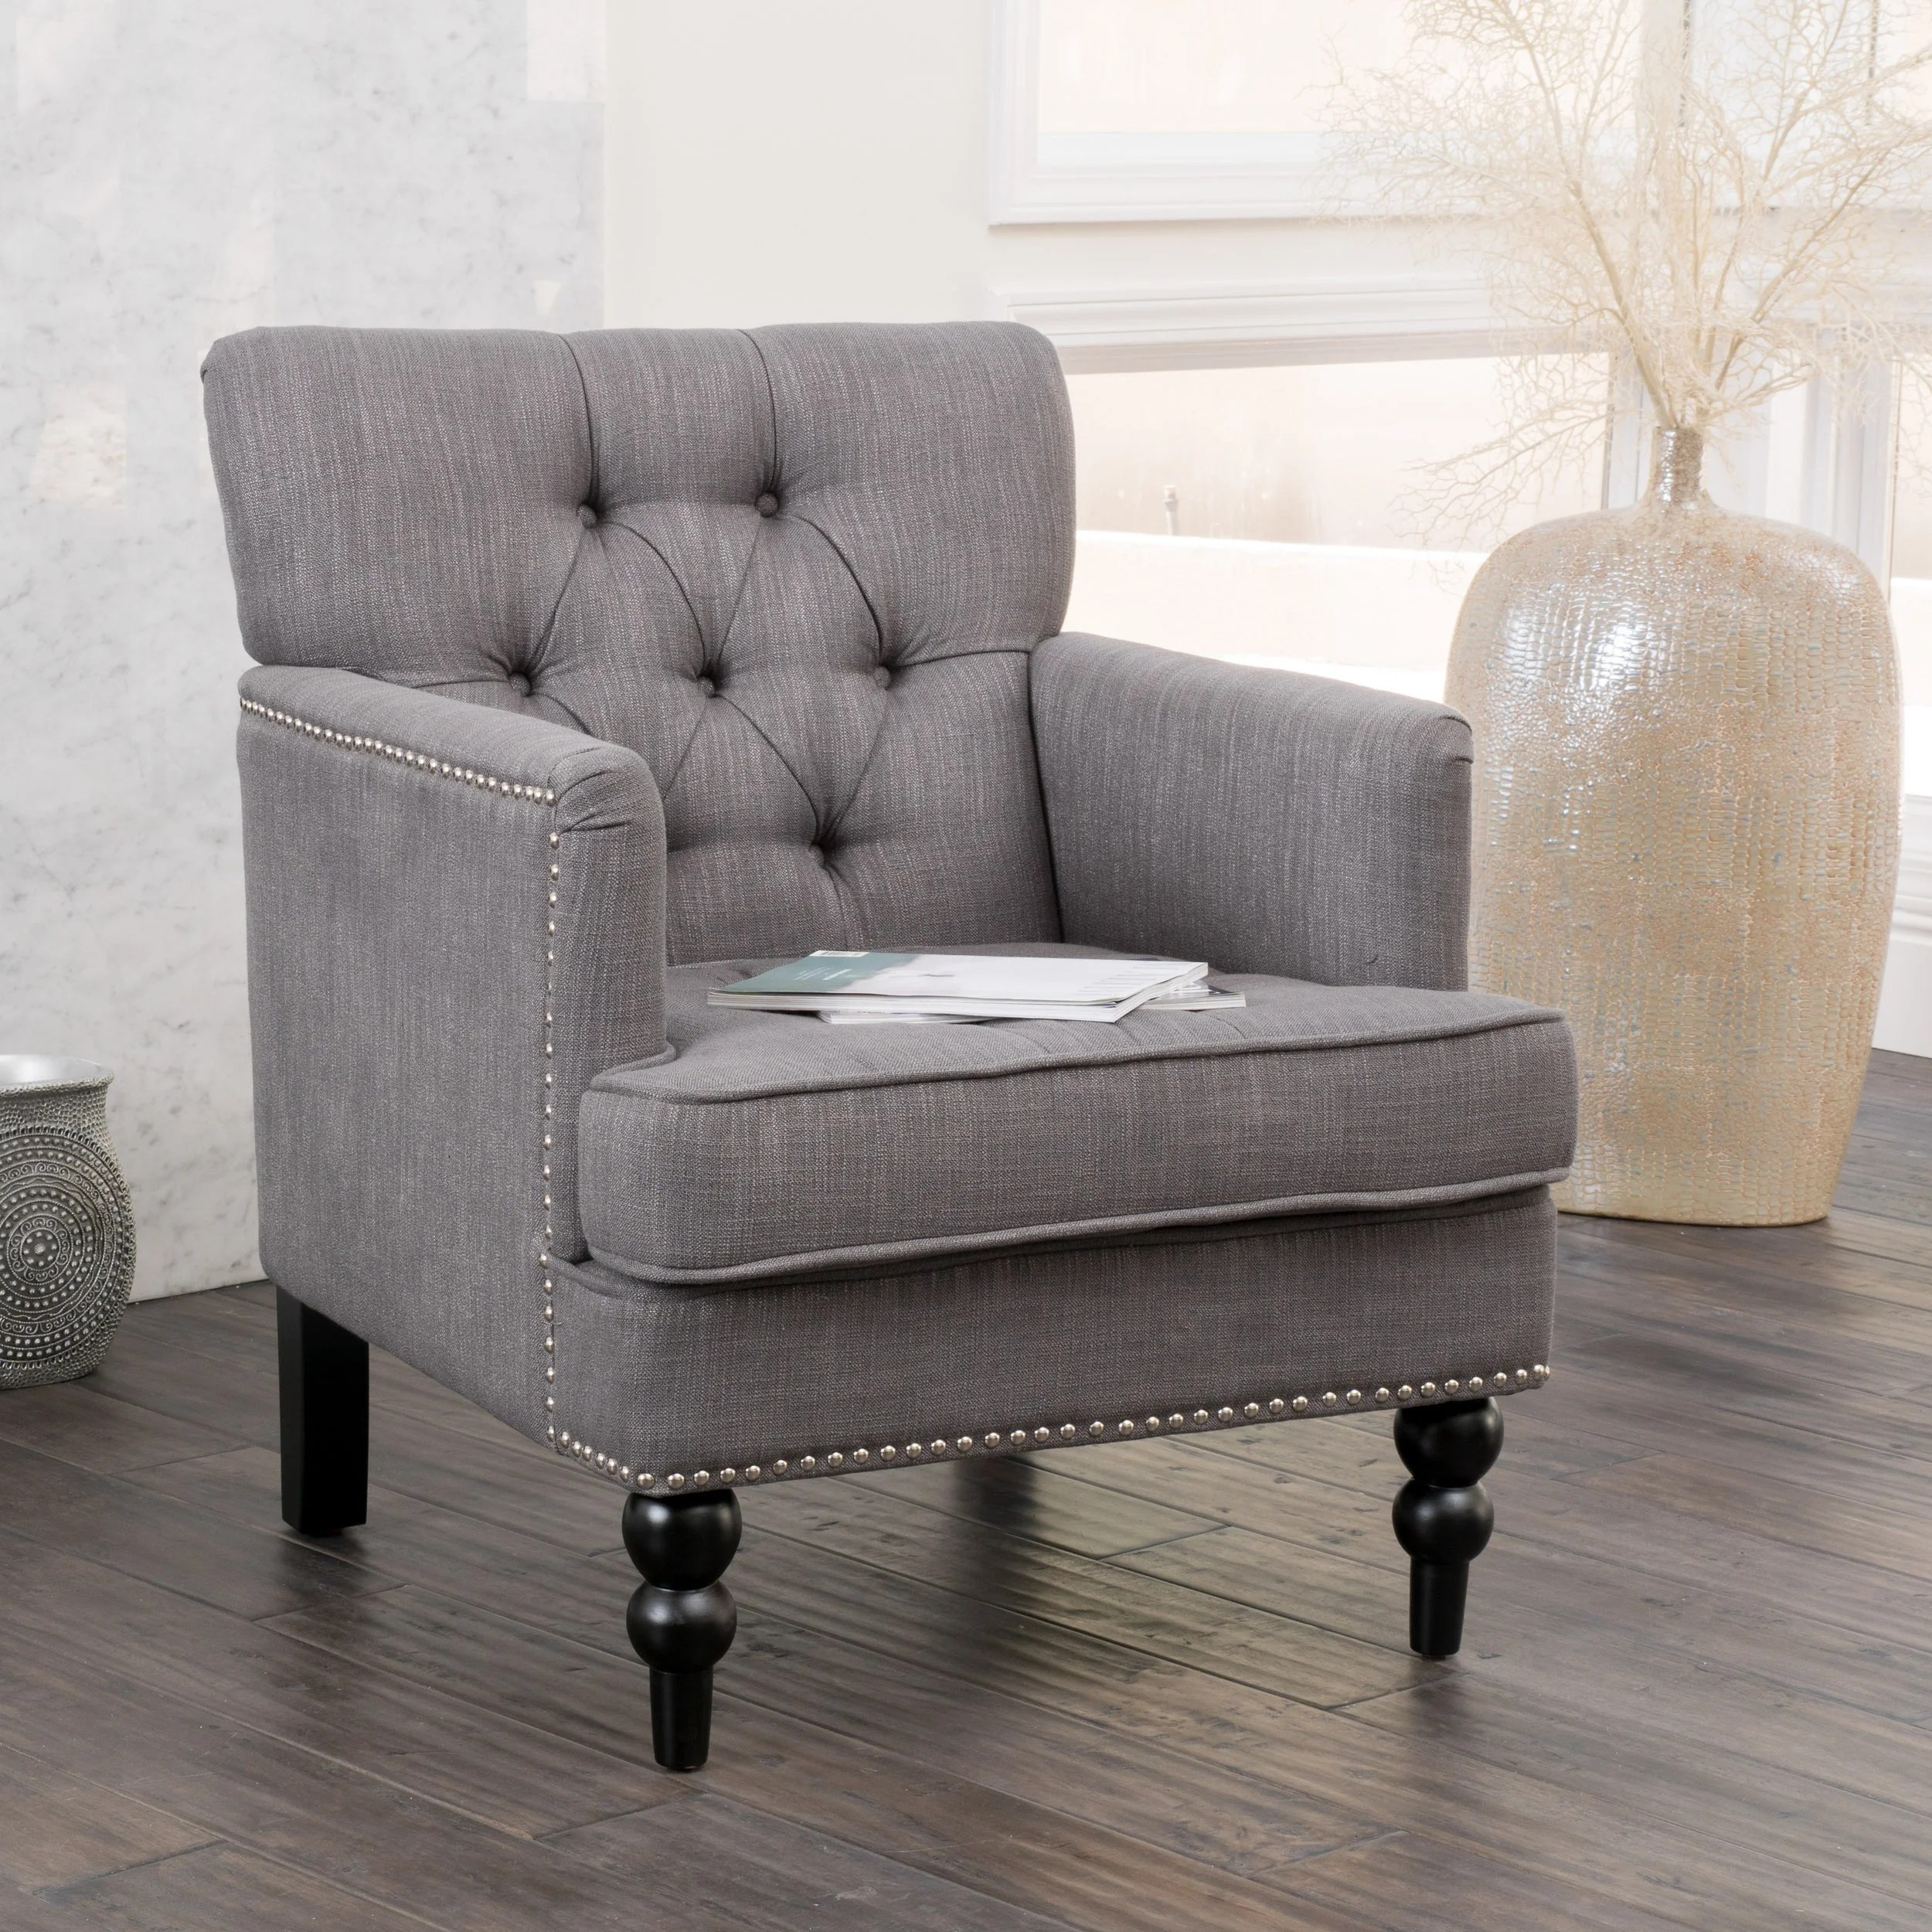 christopher knight club chair ethan allen mickey mouse and a half home malone charcoal grey